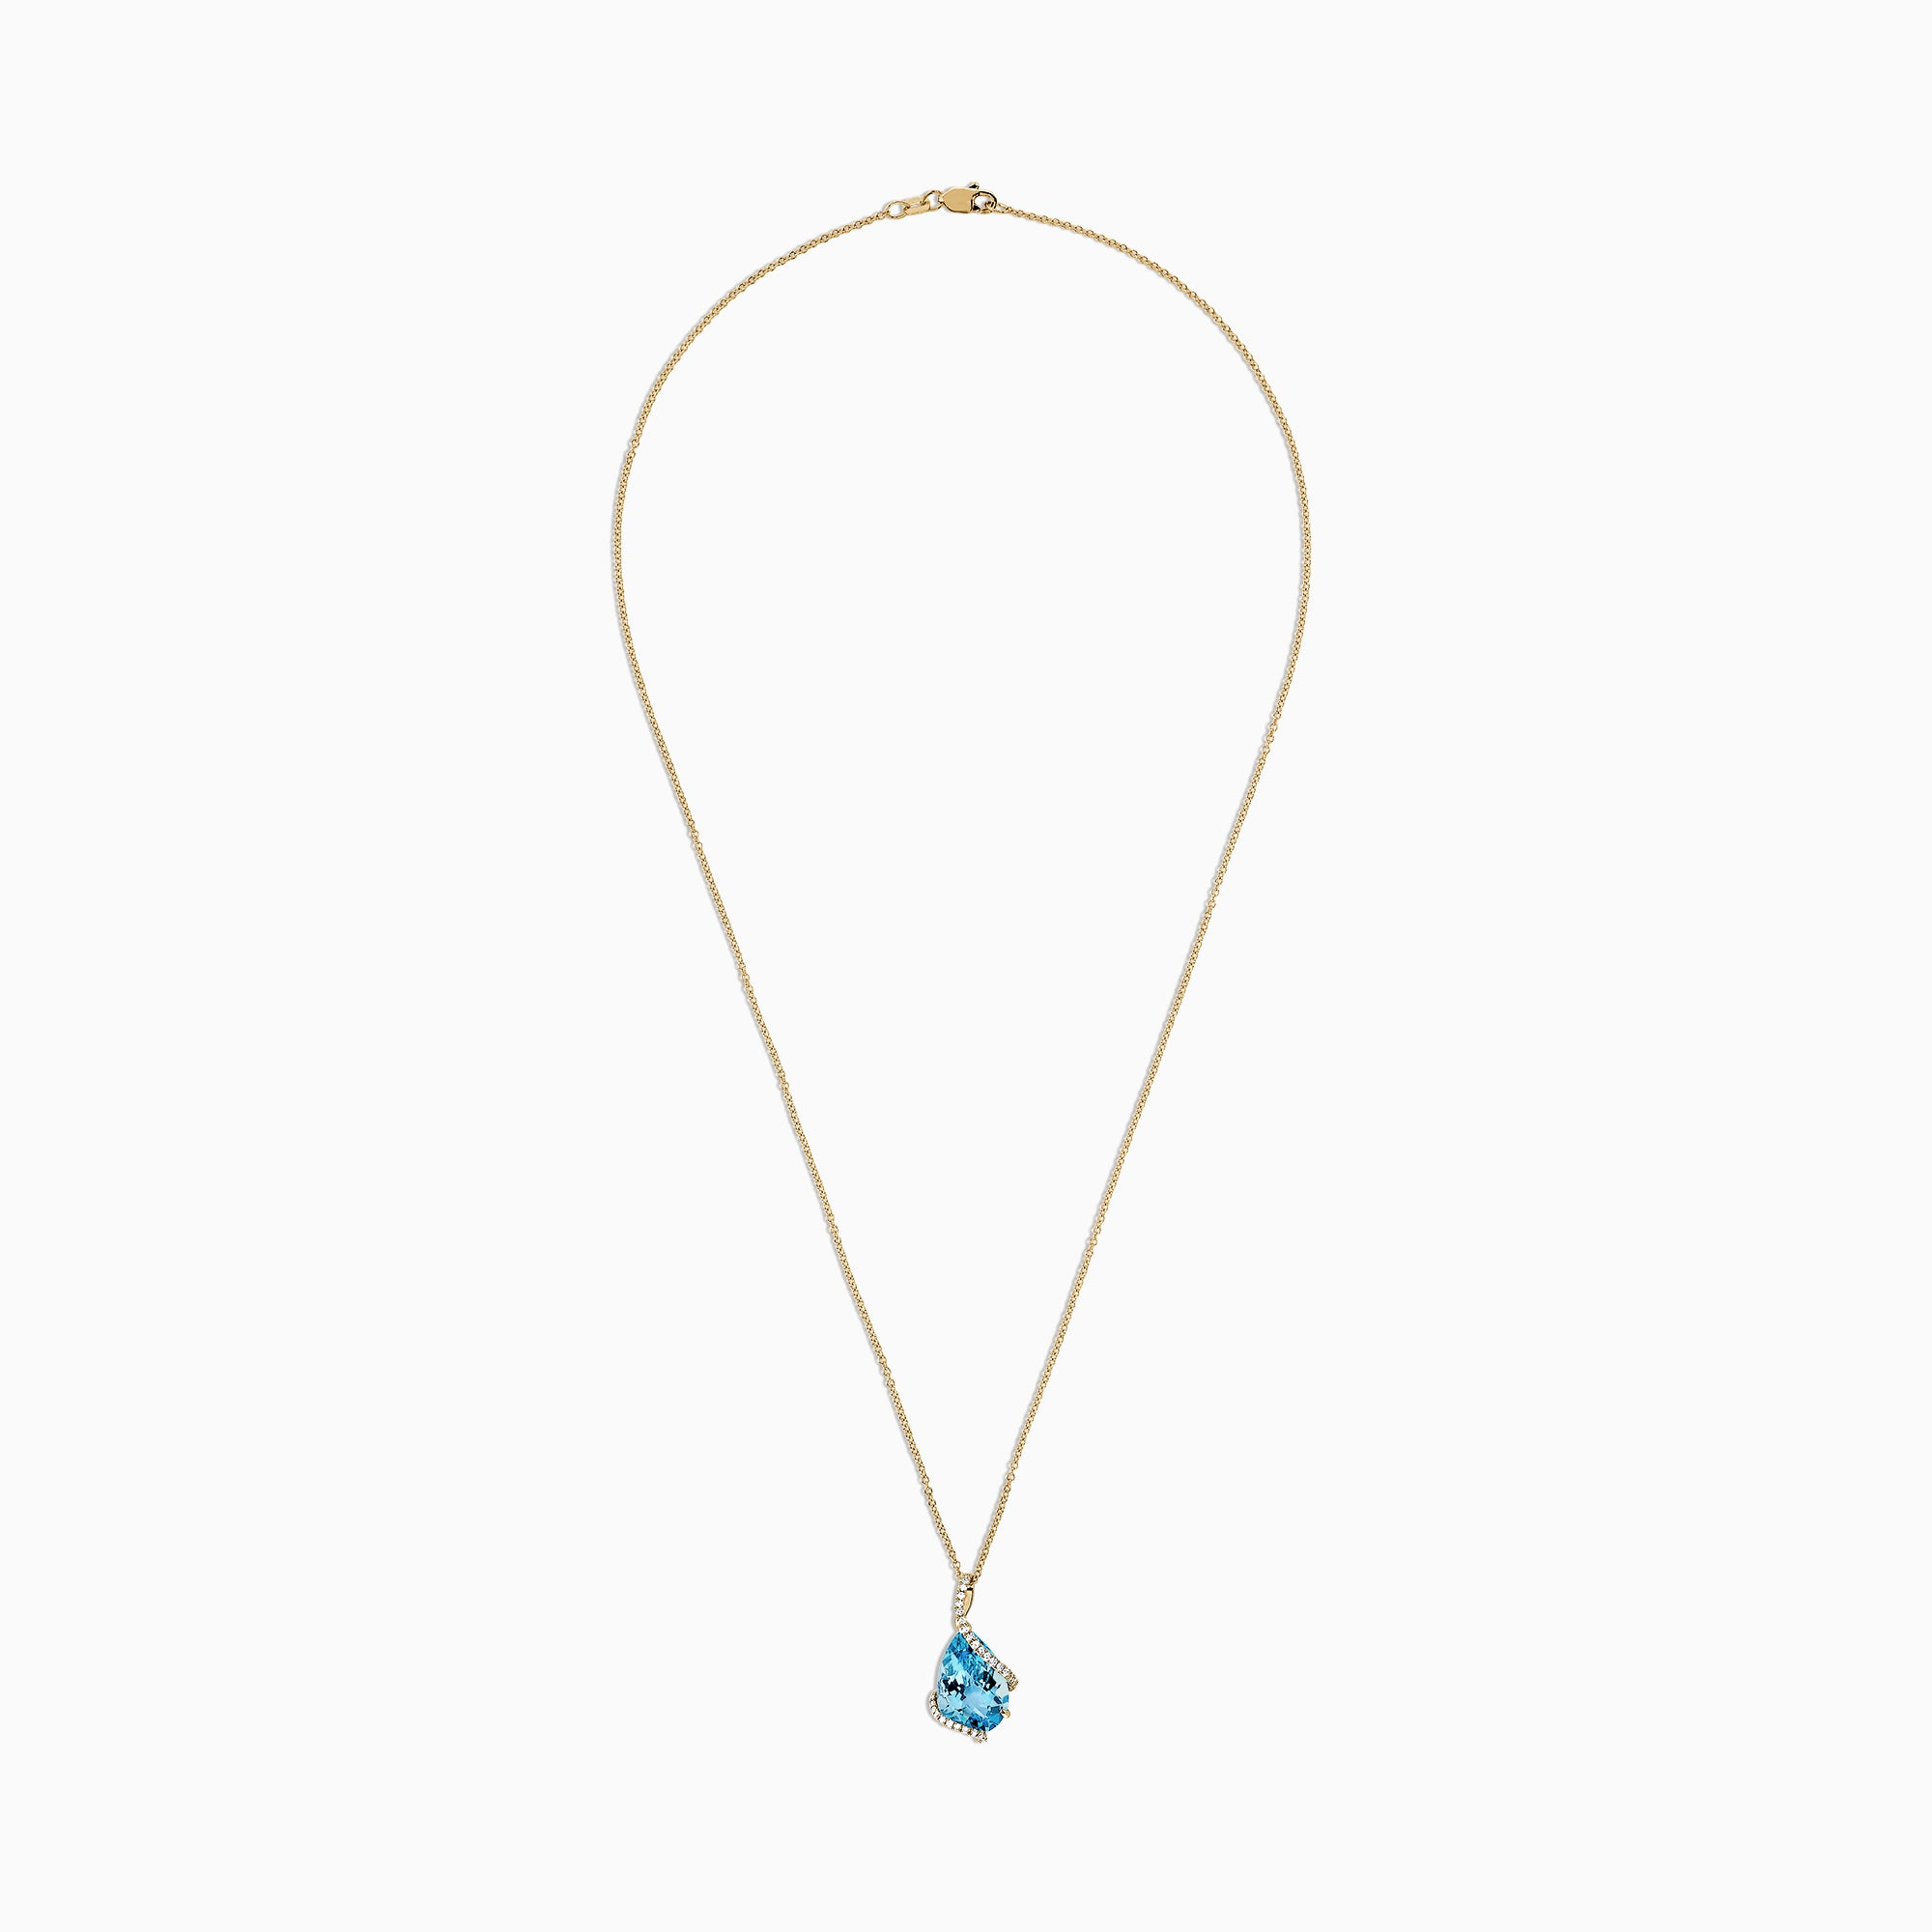 Effy Ocean Bleu 14K Yellow Gold Blue Topaz and Diamond Pendant, 6.09 TCW